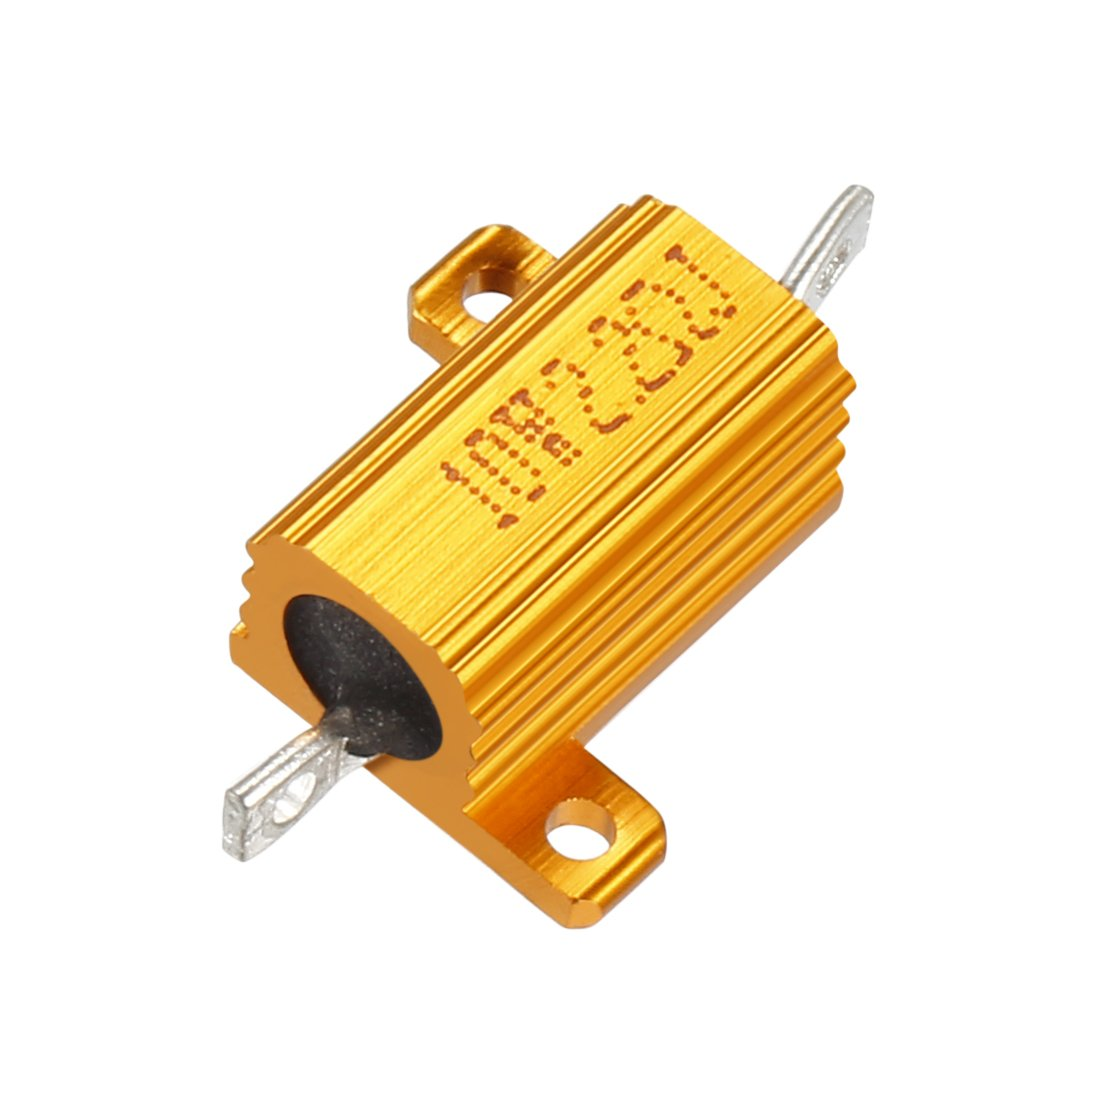 sourcingmap Aluminum Case Resistor 10W 2.2 Ohm Wirewound for LED Converter with Rod Post 10W2.2RJ